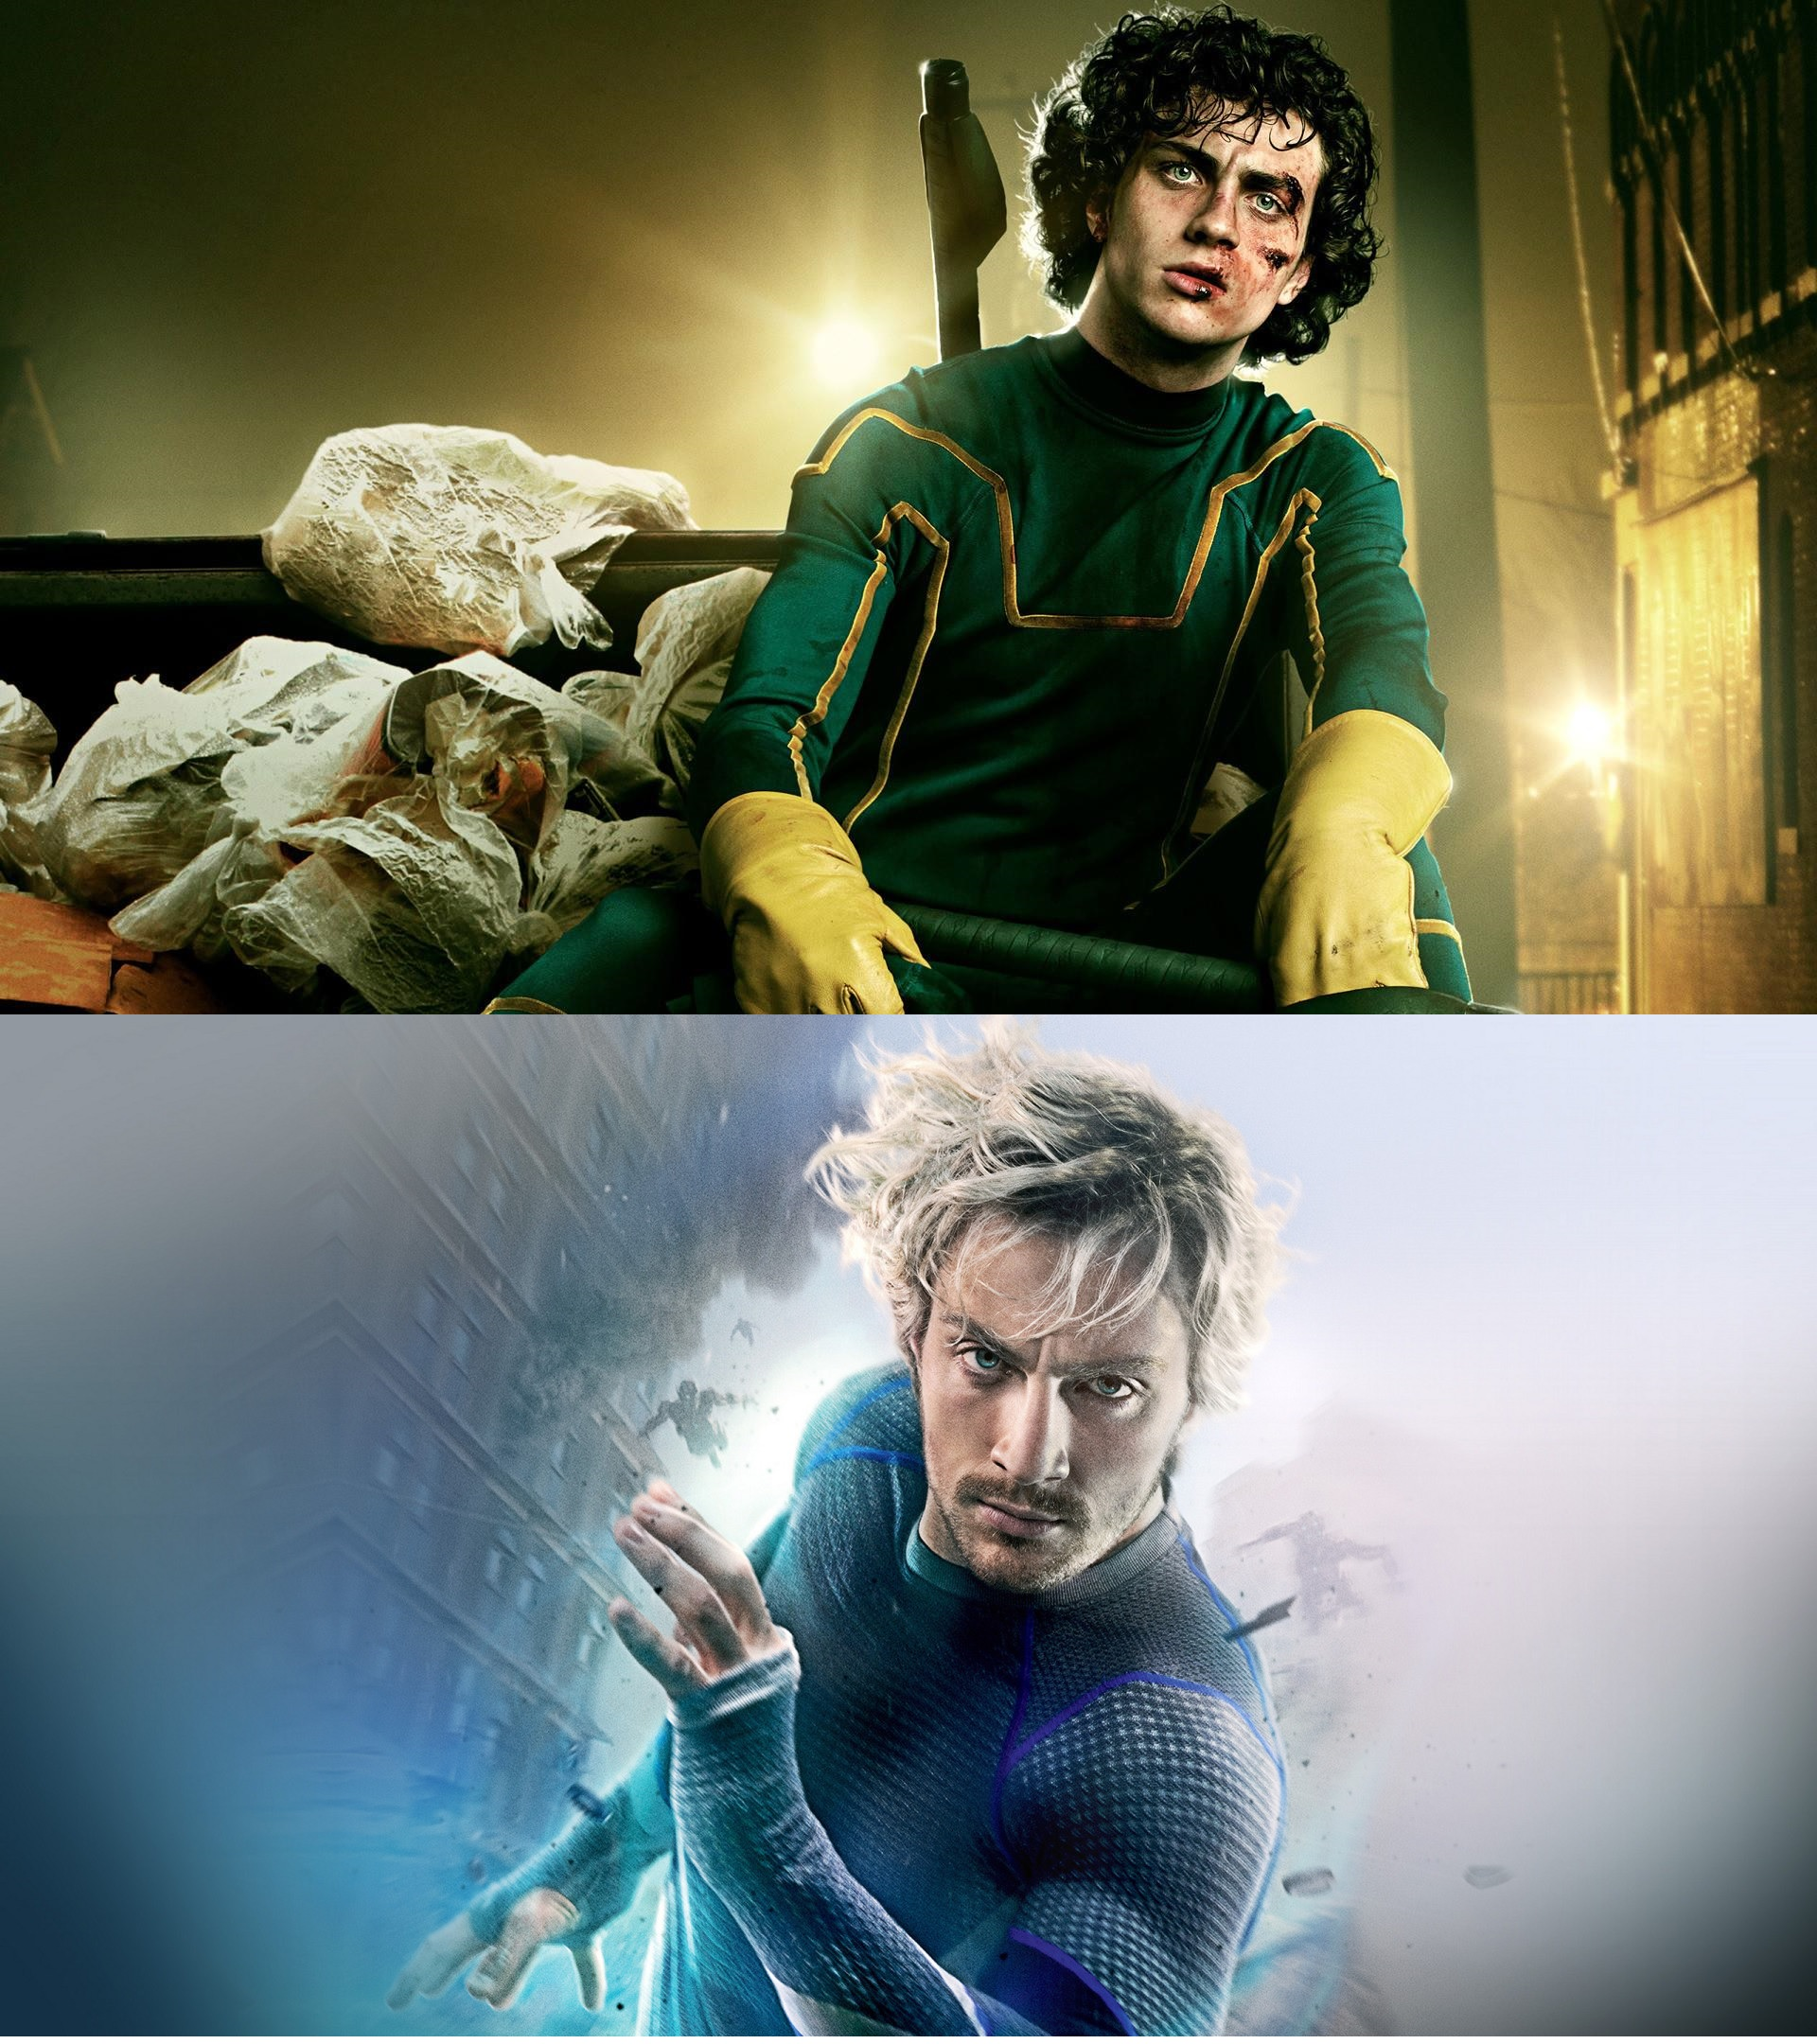 Aaron Taylor-Johnson as Kick-Ass and Quicksilver - Actors who have played more than one superhero